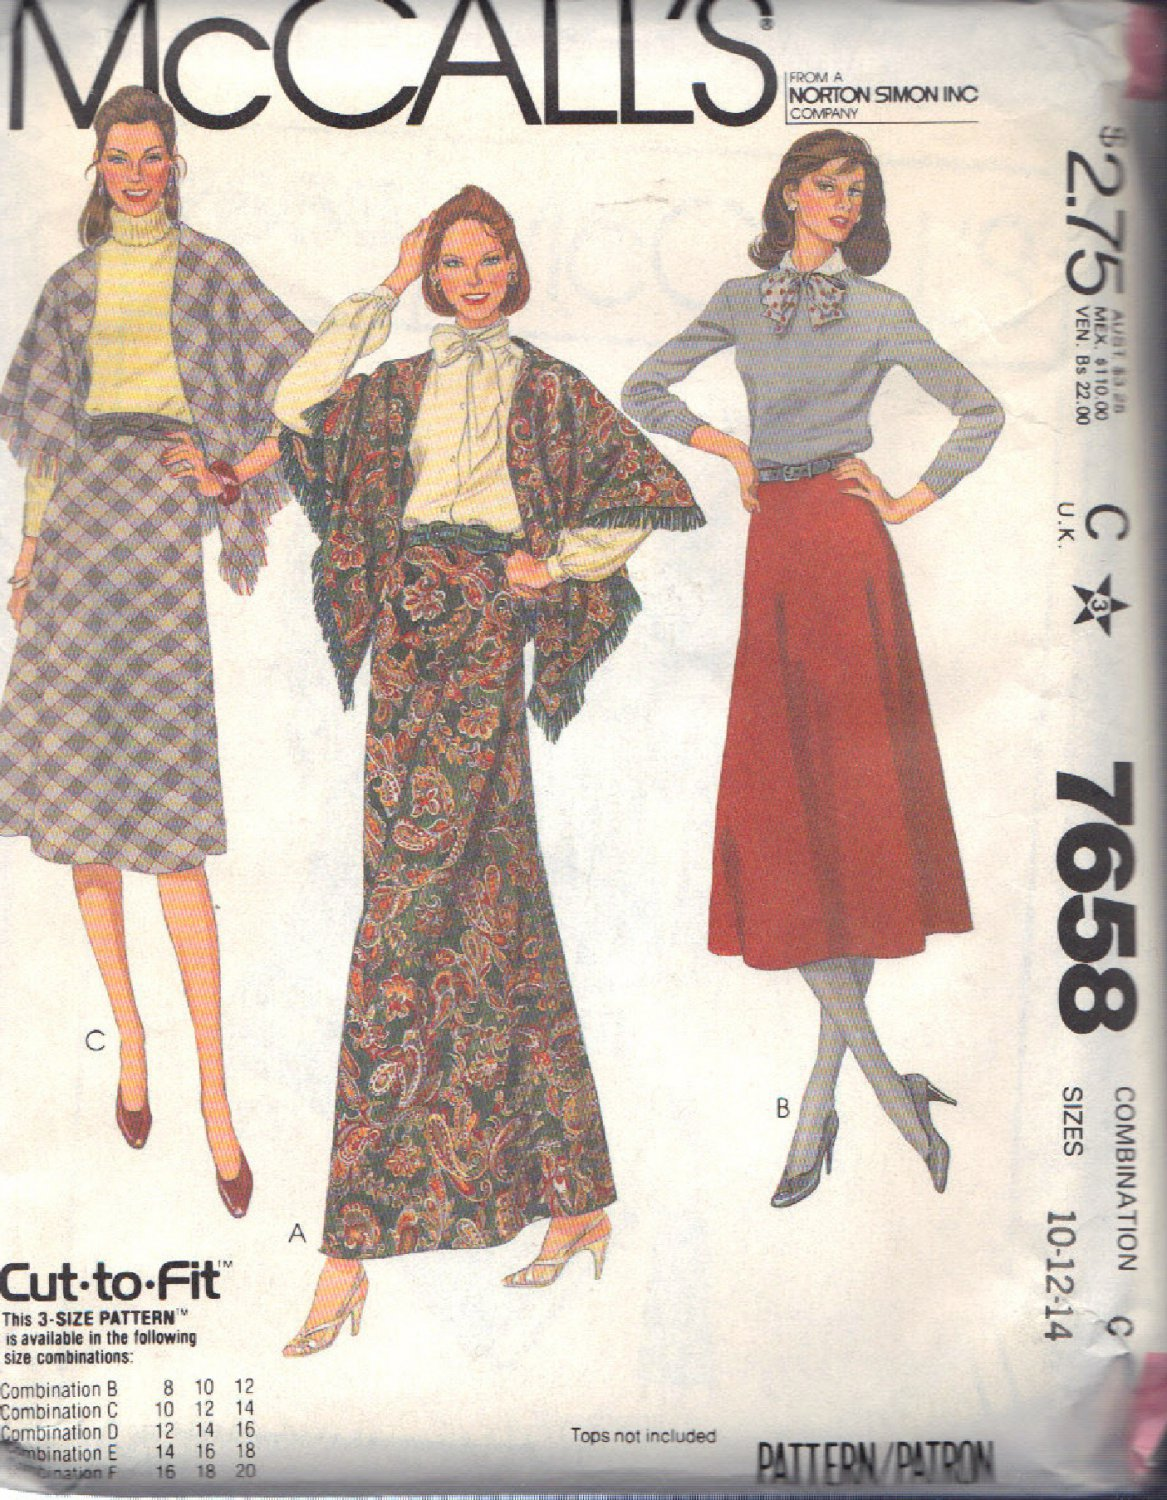 McCALL'S PATTERN 7658 DATED 1981 SIZE 10/12/14 MISSES' SKIRT & SHAWL UNCUT